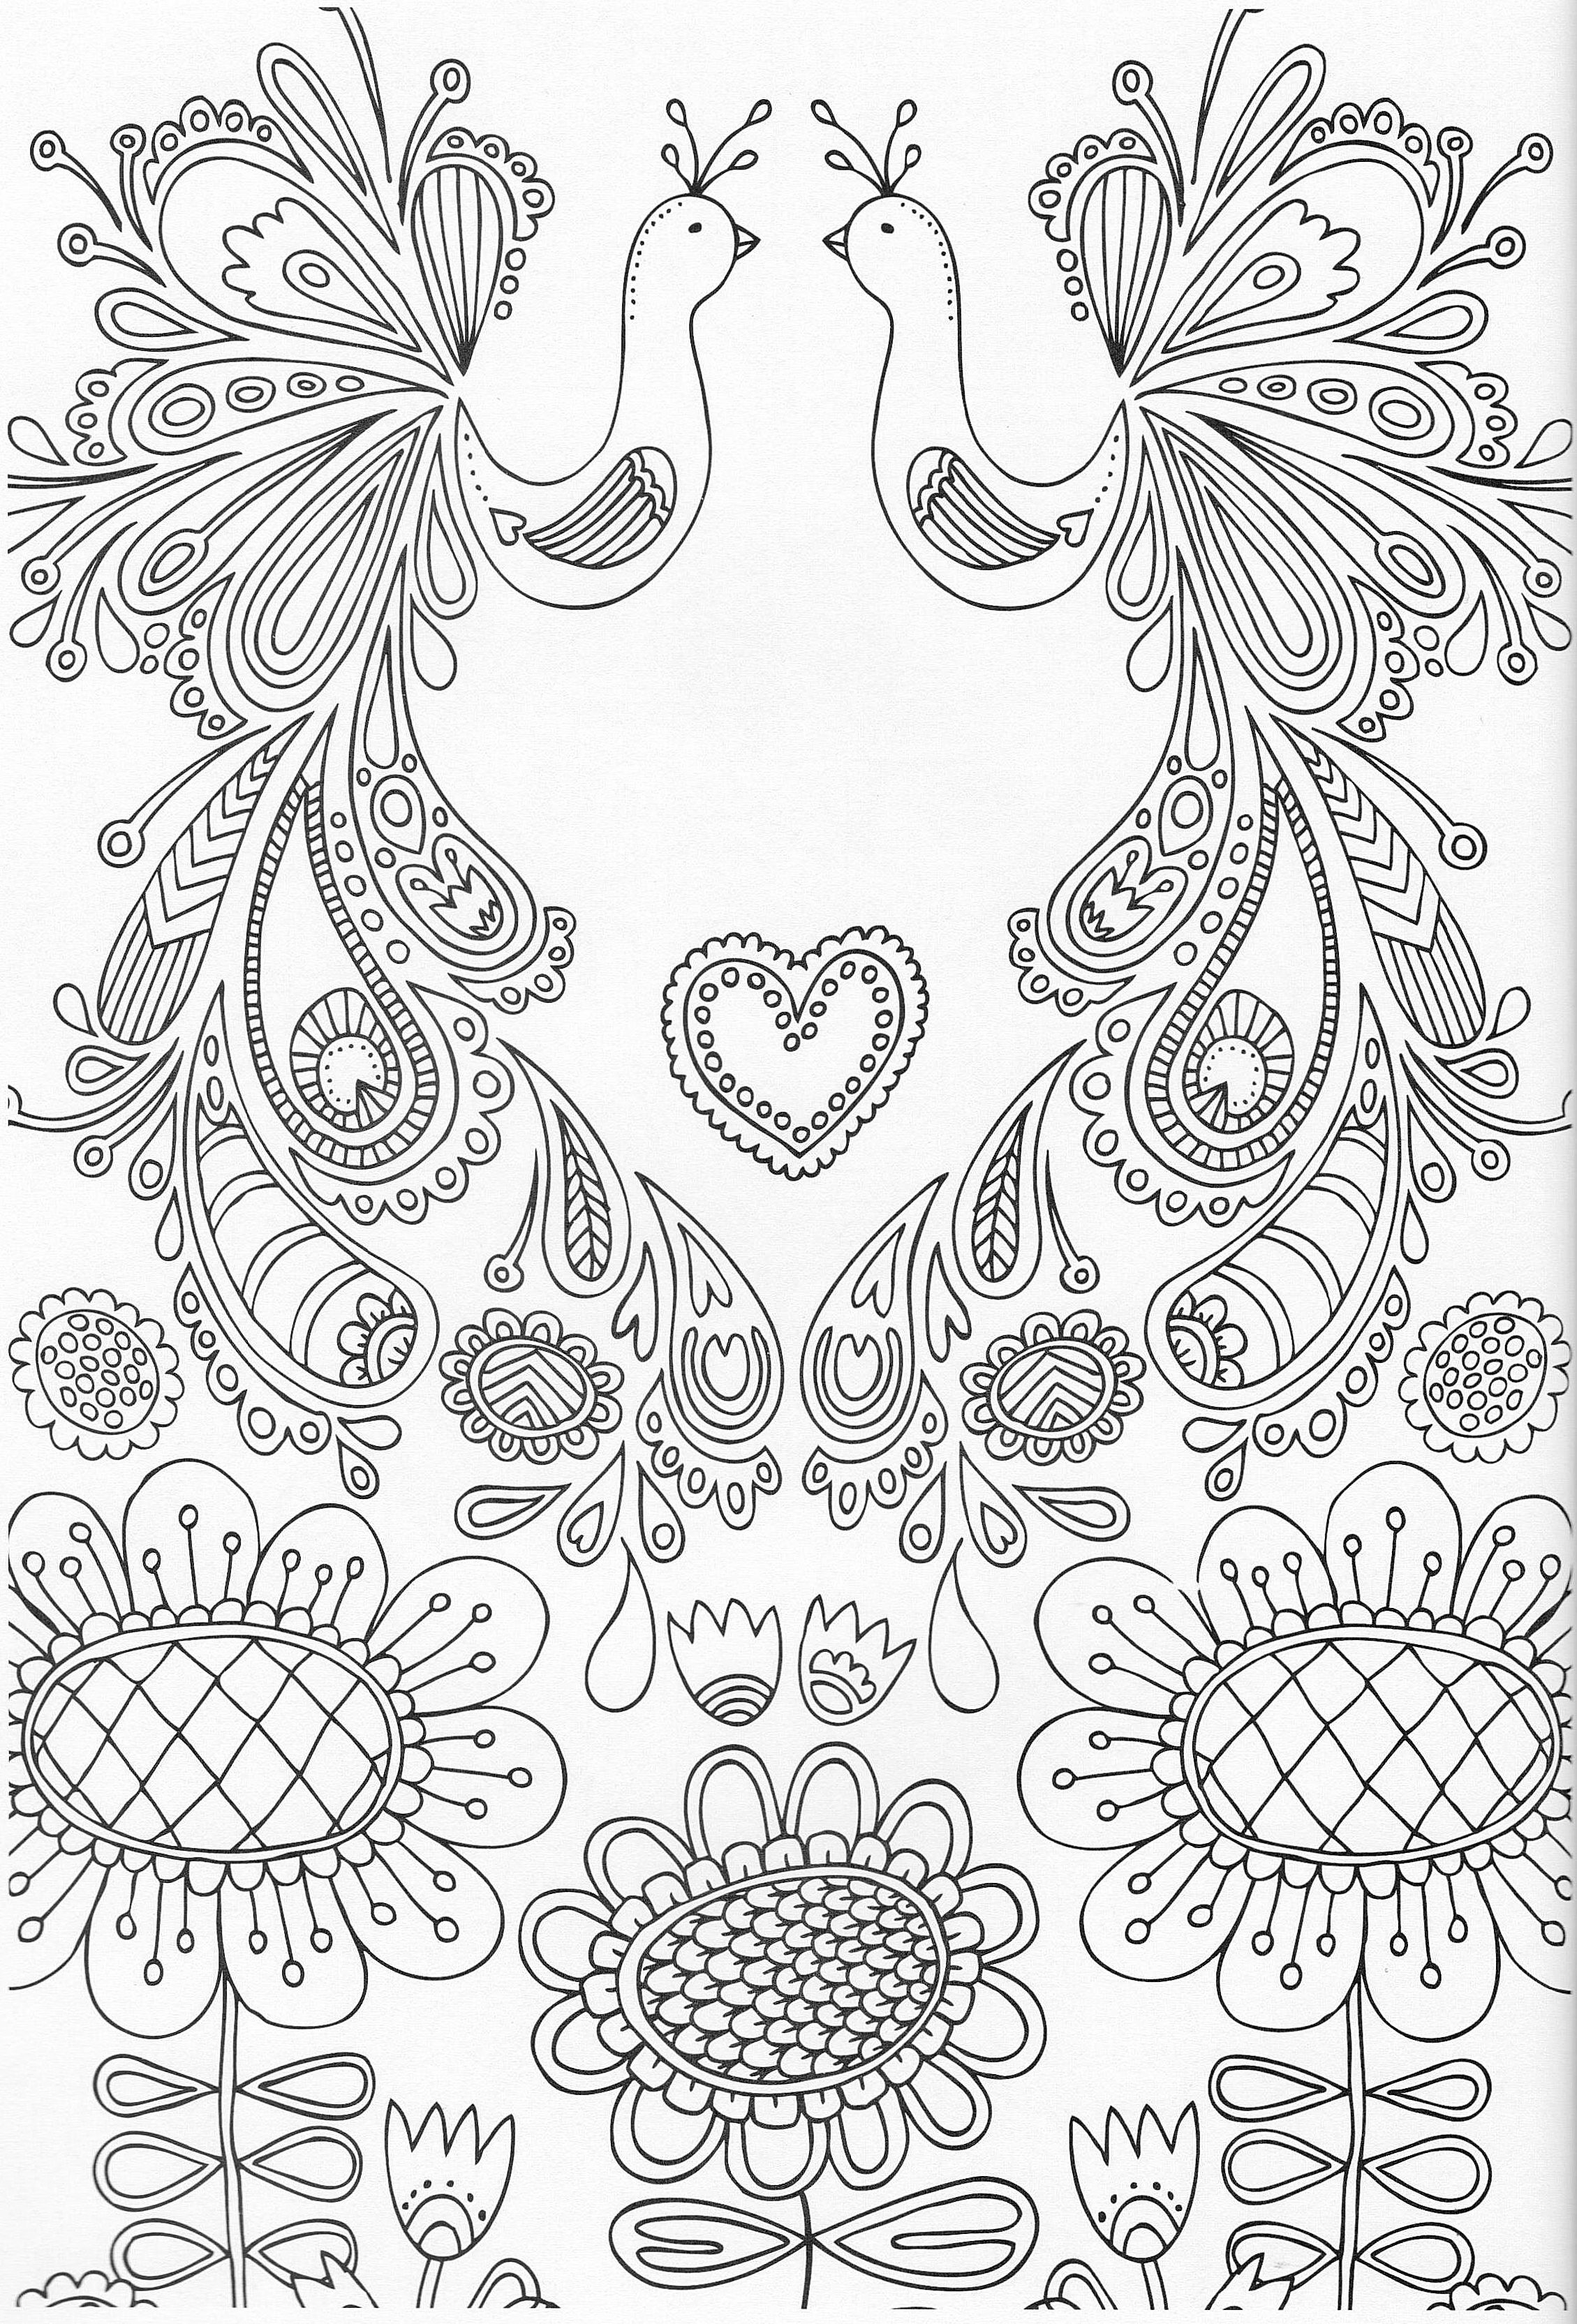 Adult coloring page free sample Join fb grownup coloring group